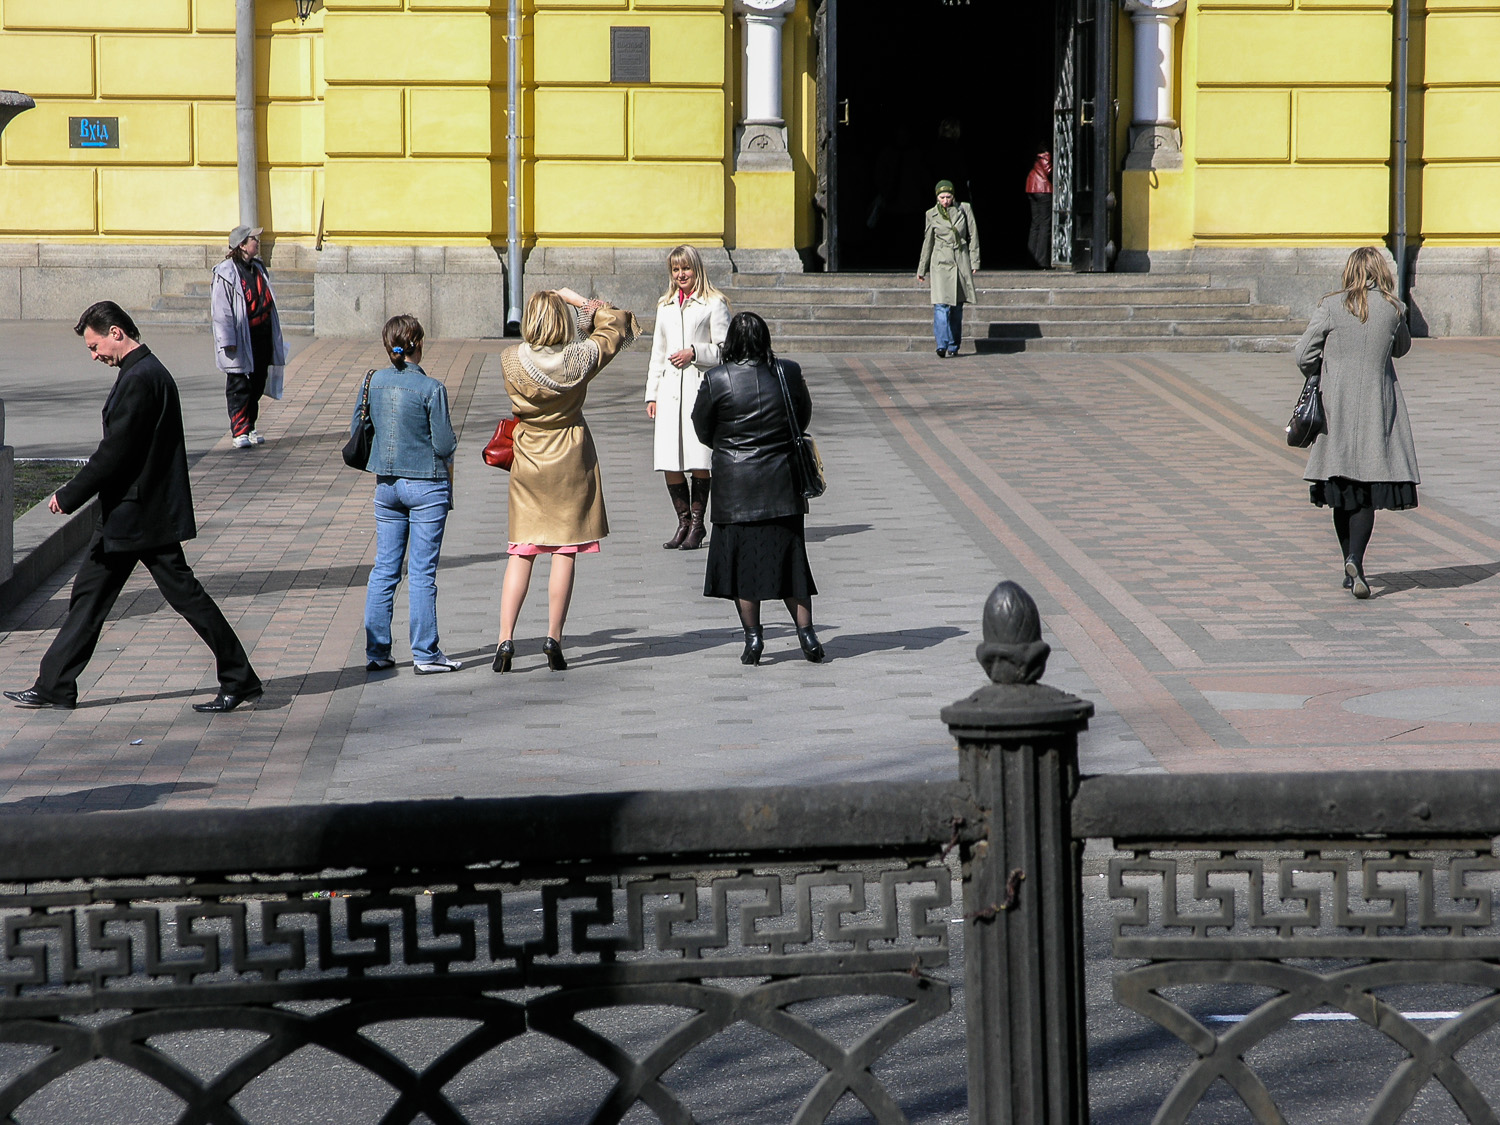 A street scene in front of St Volodymyr's Cathedral of the Ukrainian Orthodox Church (Kiev Patriarchy) in Kiev.